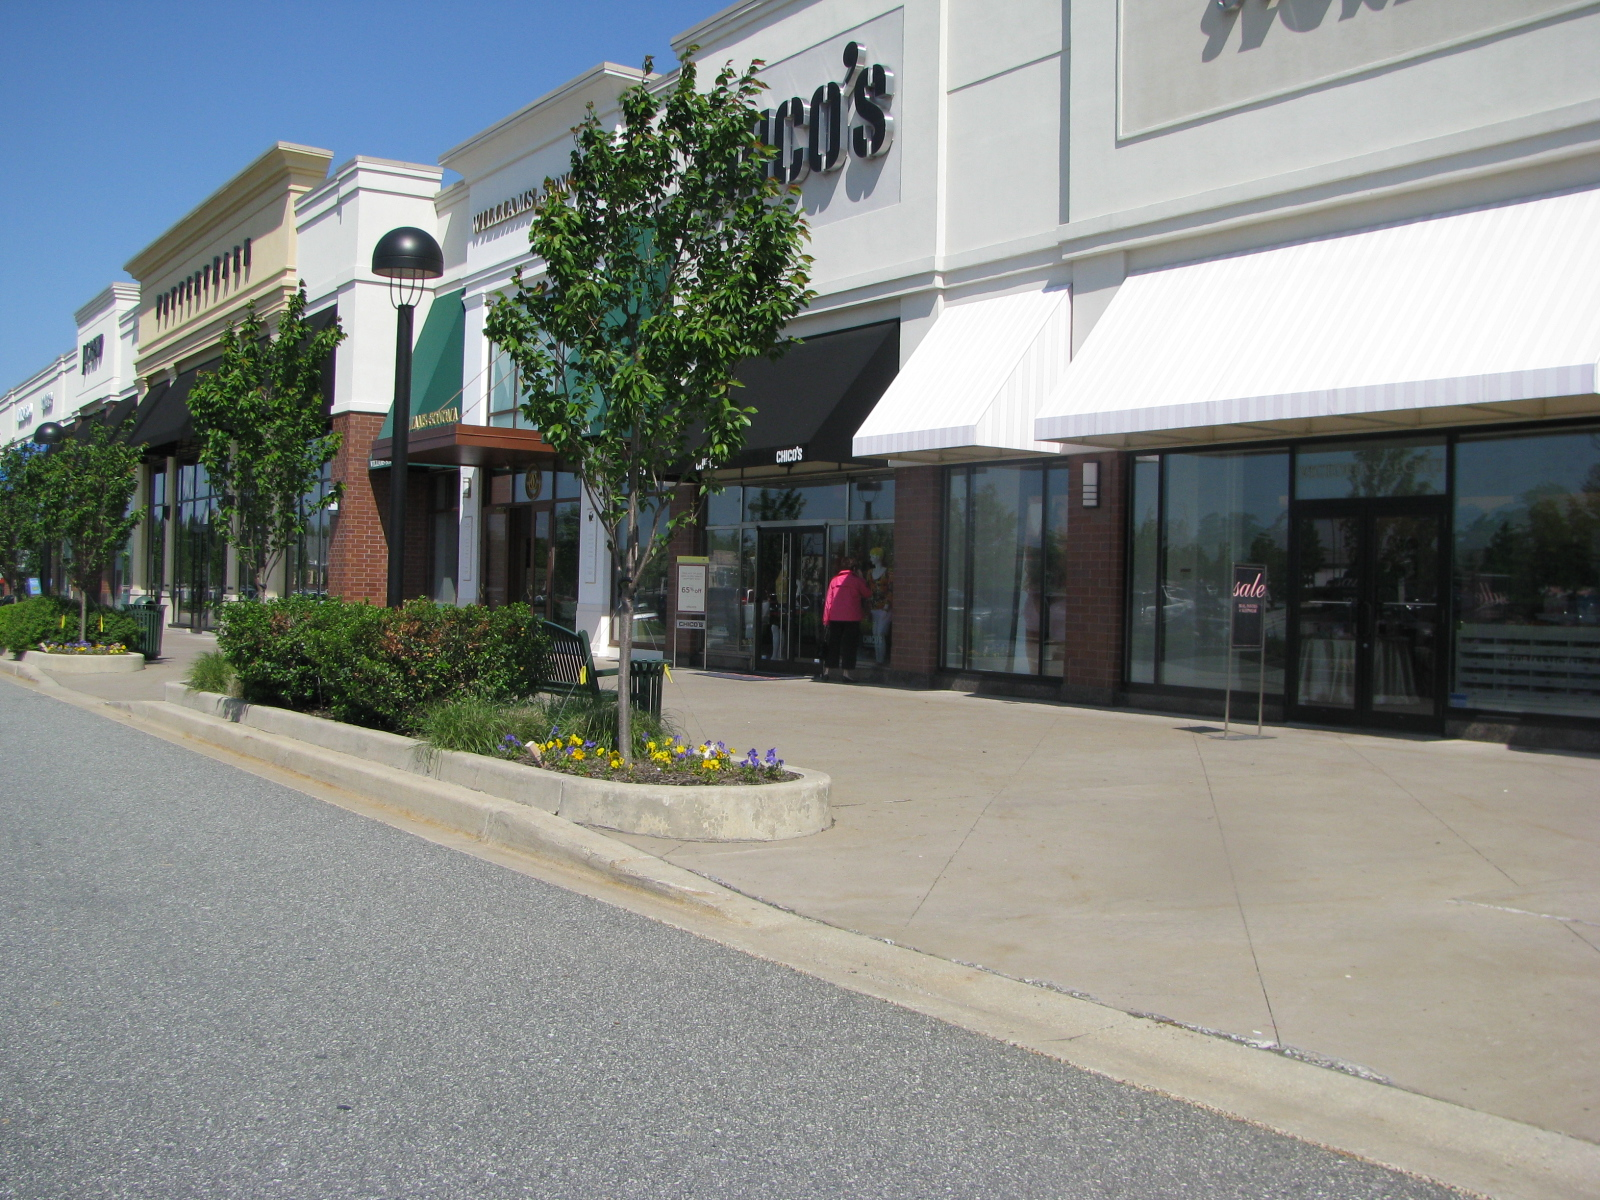 Shopping_Center_Facade.jpg